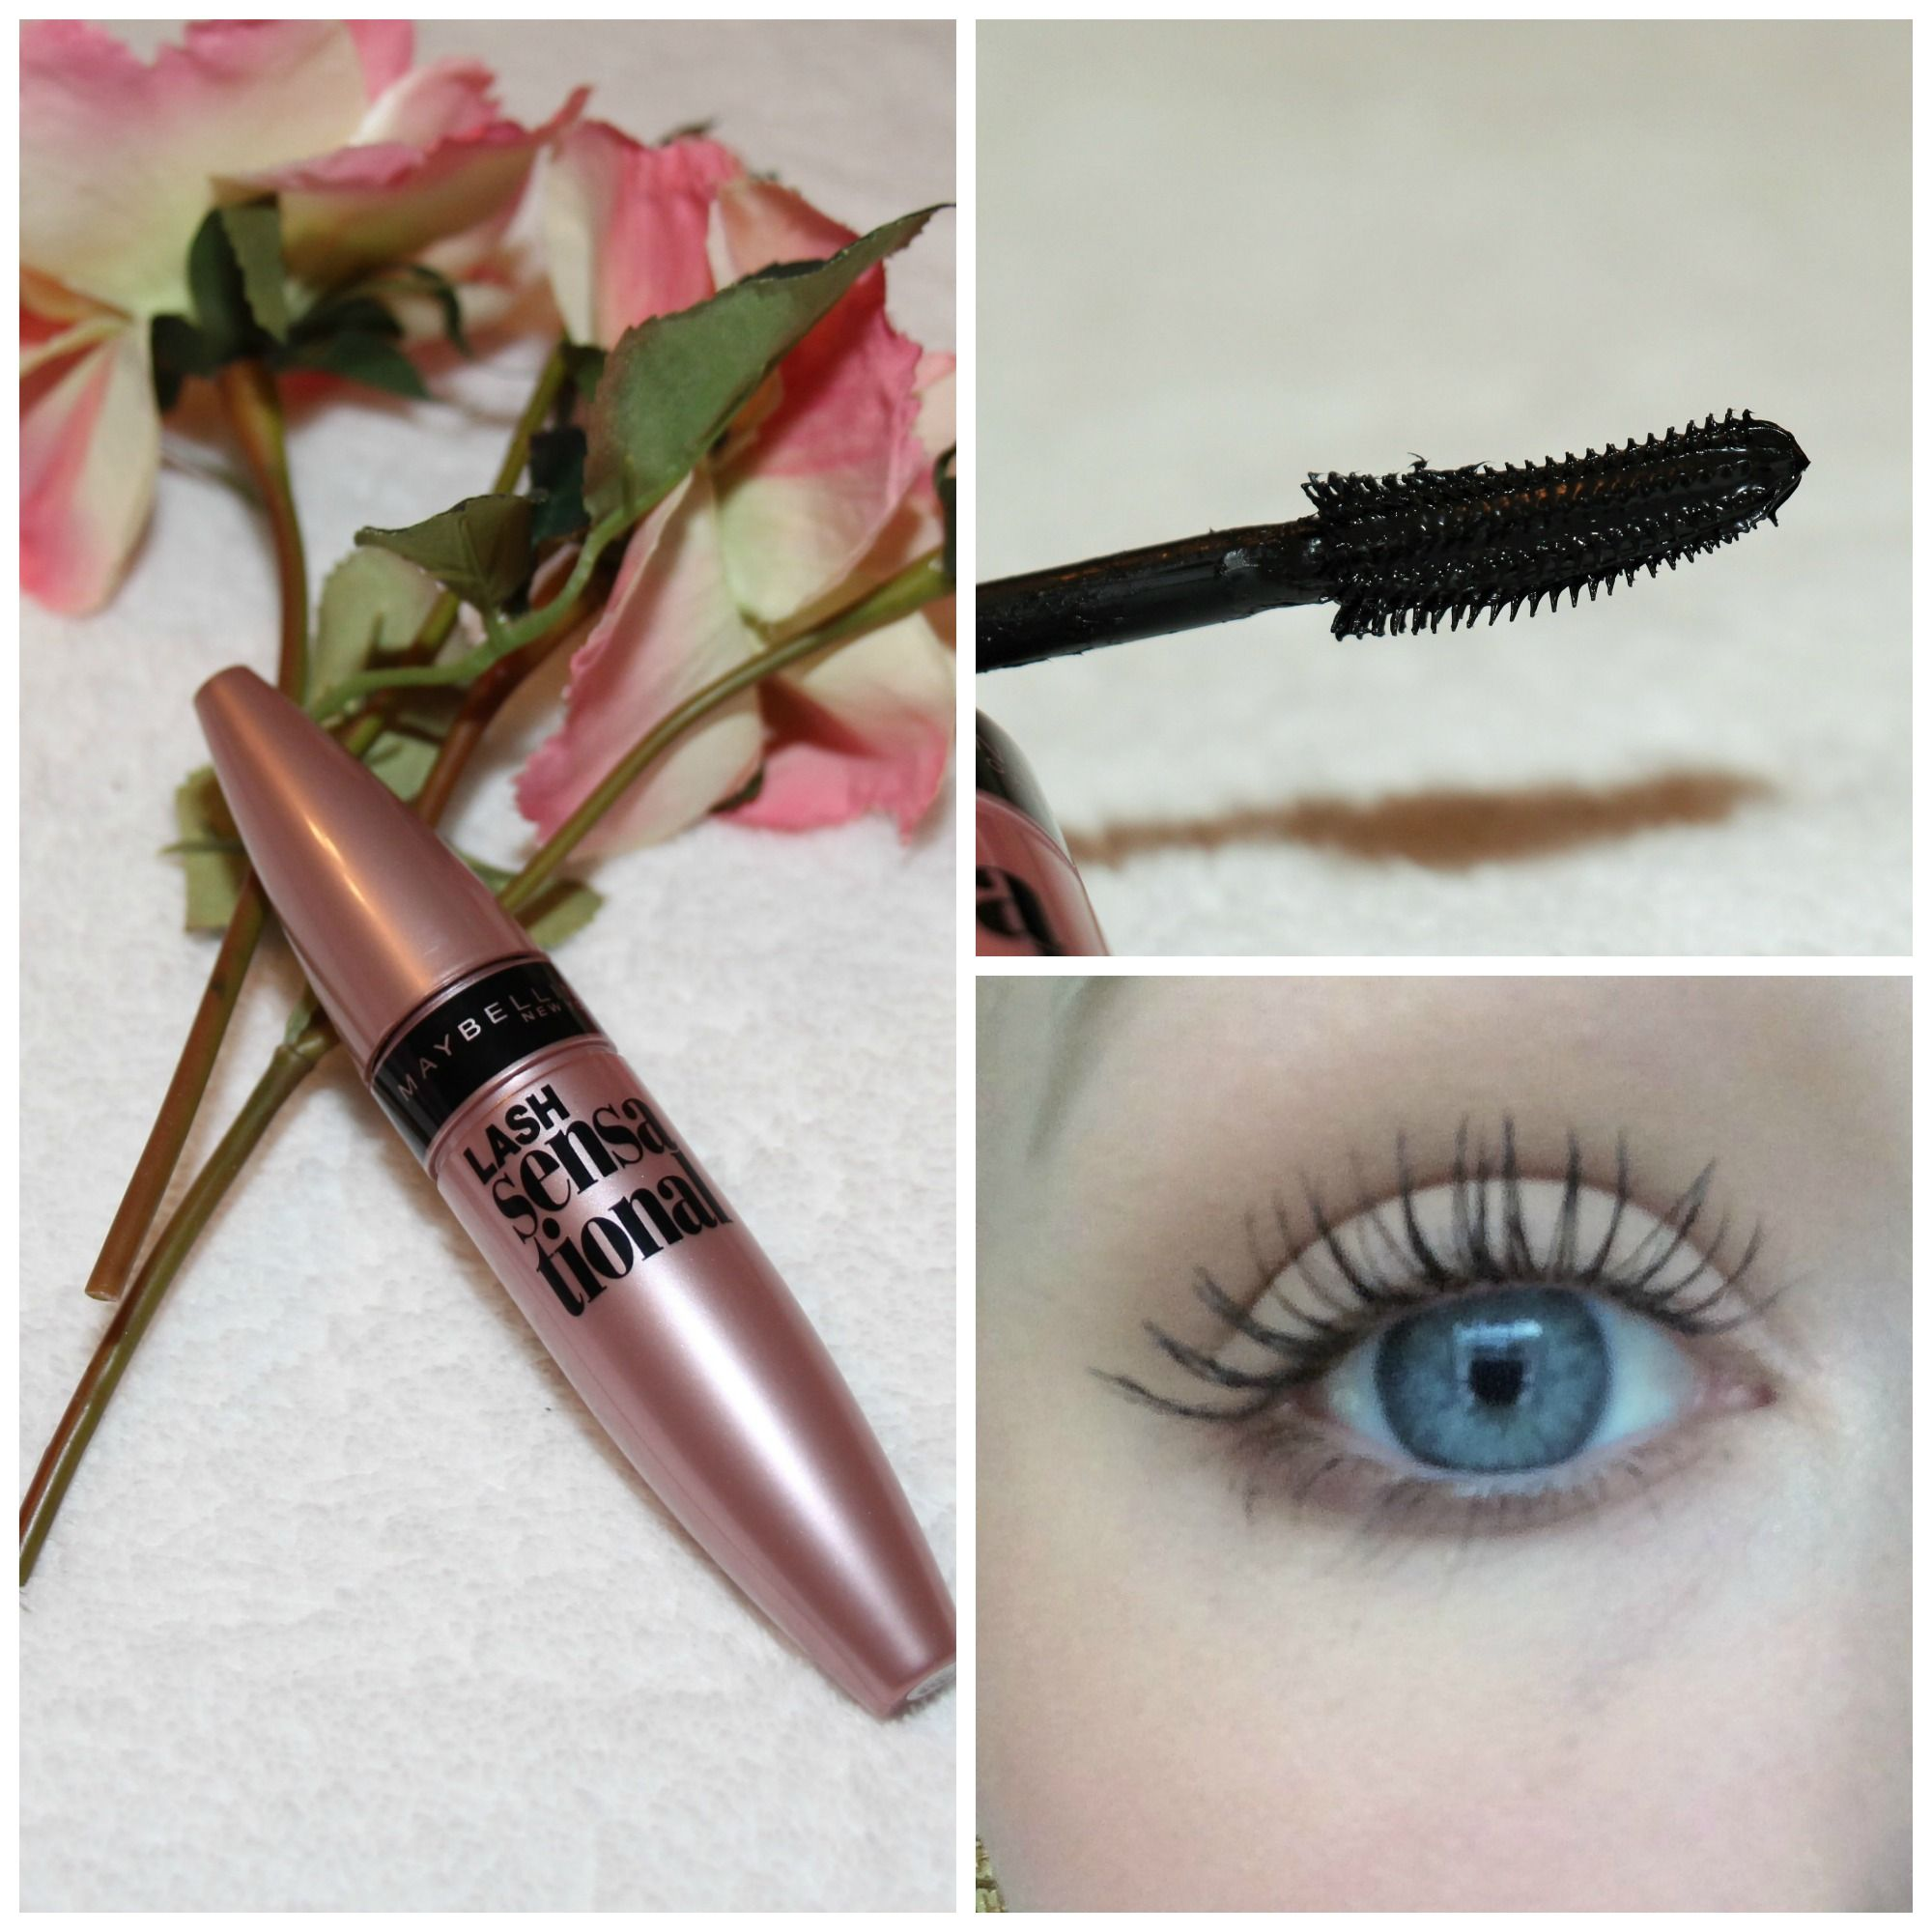 343d0e8996f Maybelline Lash Sensational Mascara~ Just uploaded a first impression  review if you want to find out more!